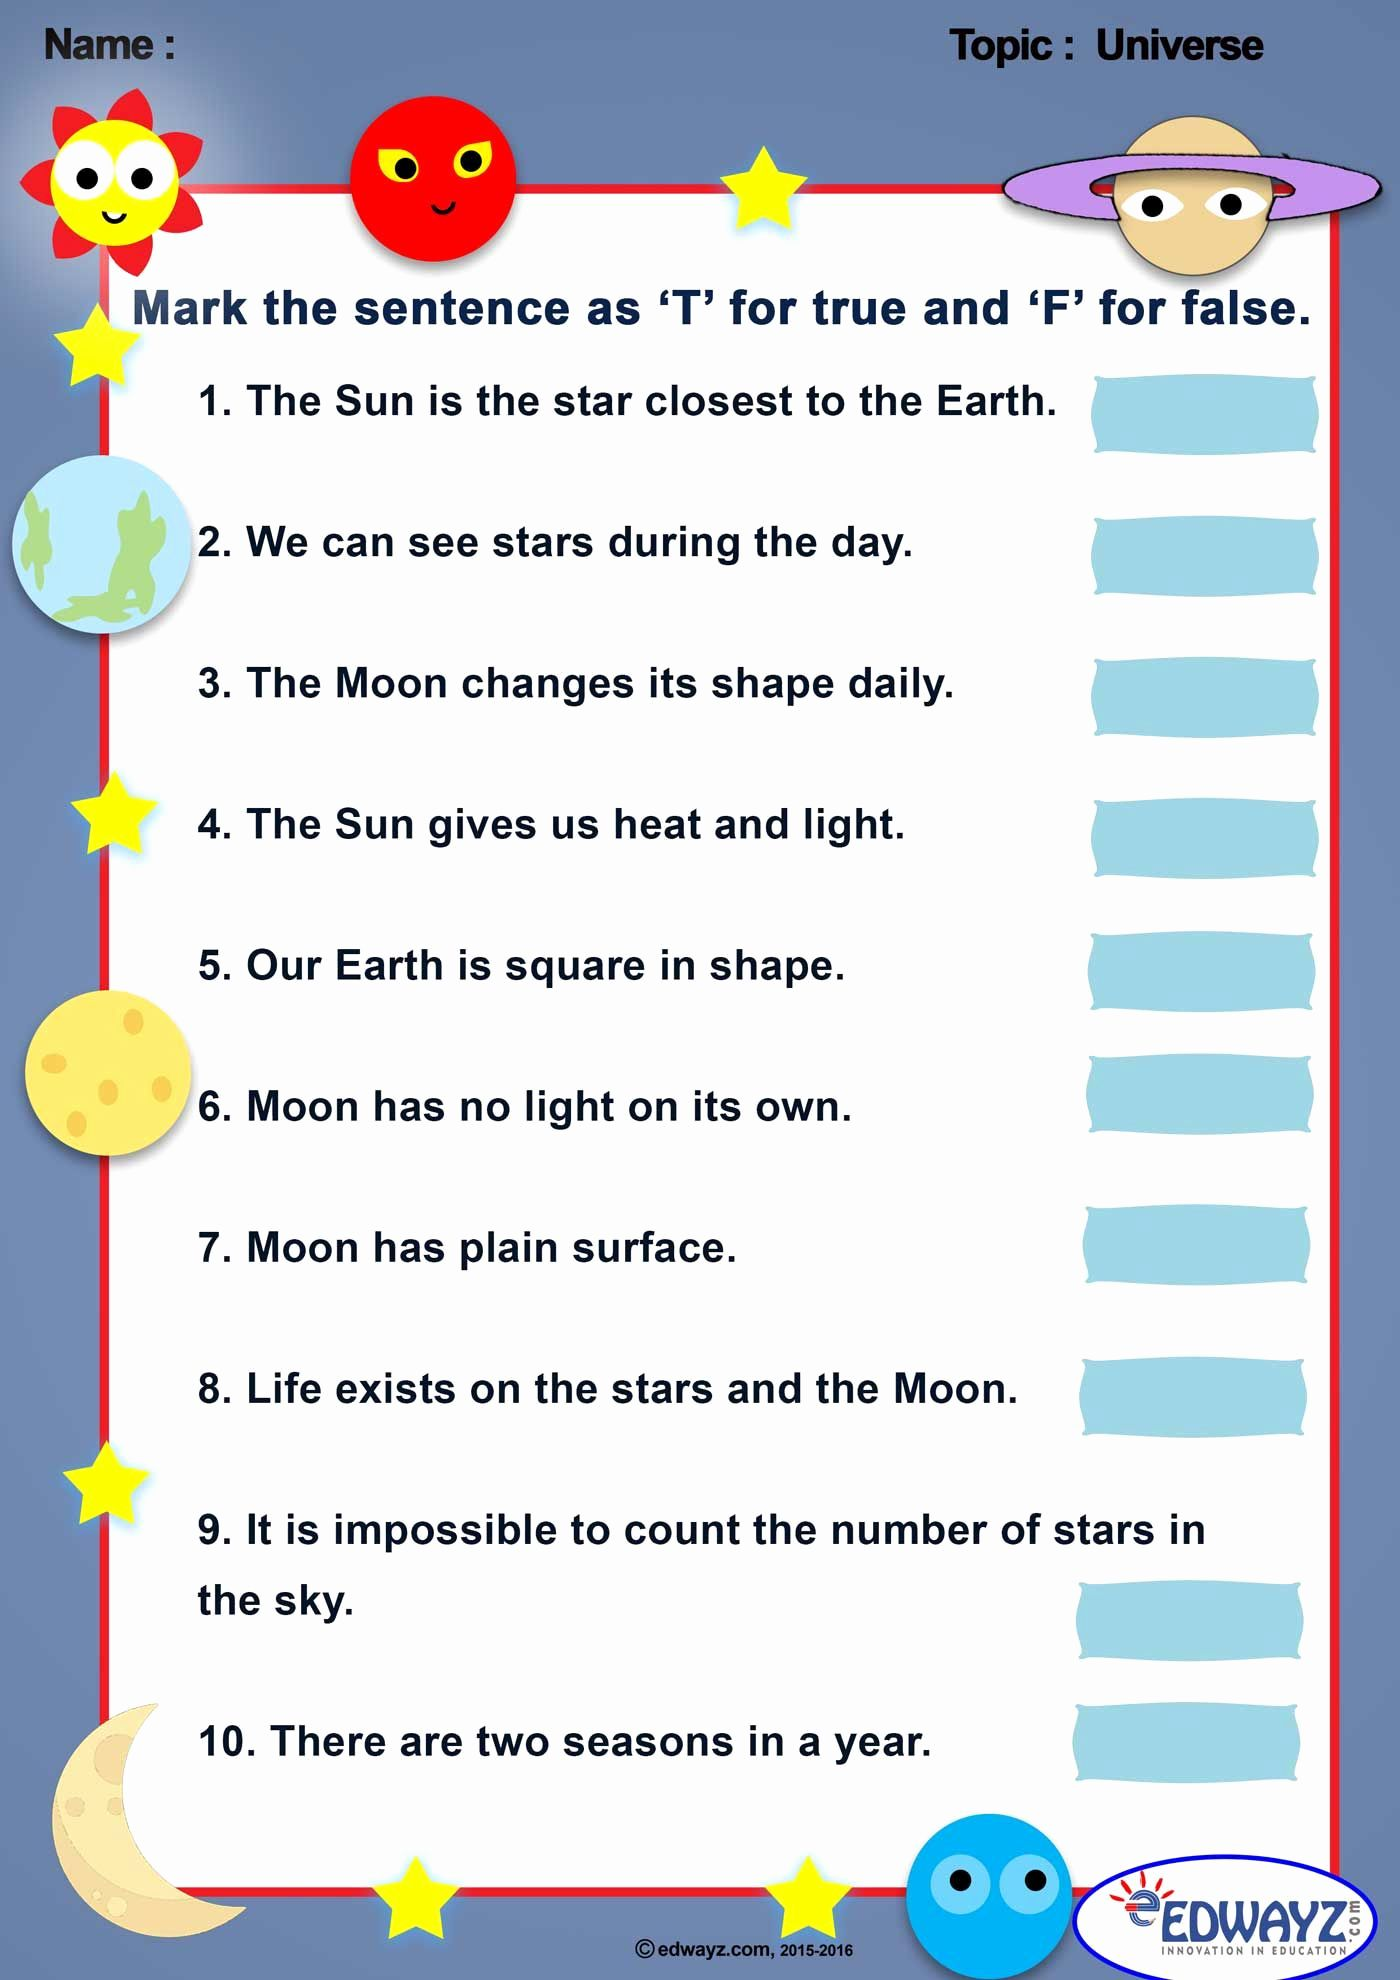 Worksheet Universe Kindergarten In